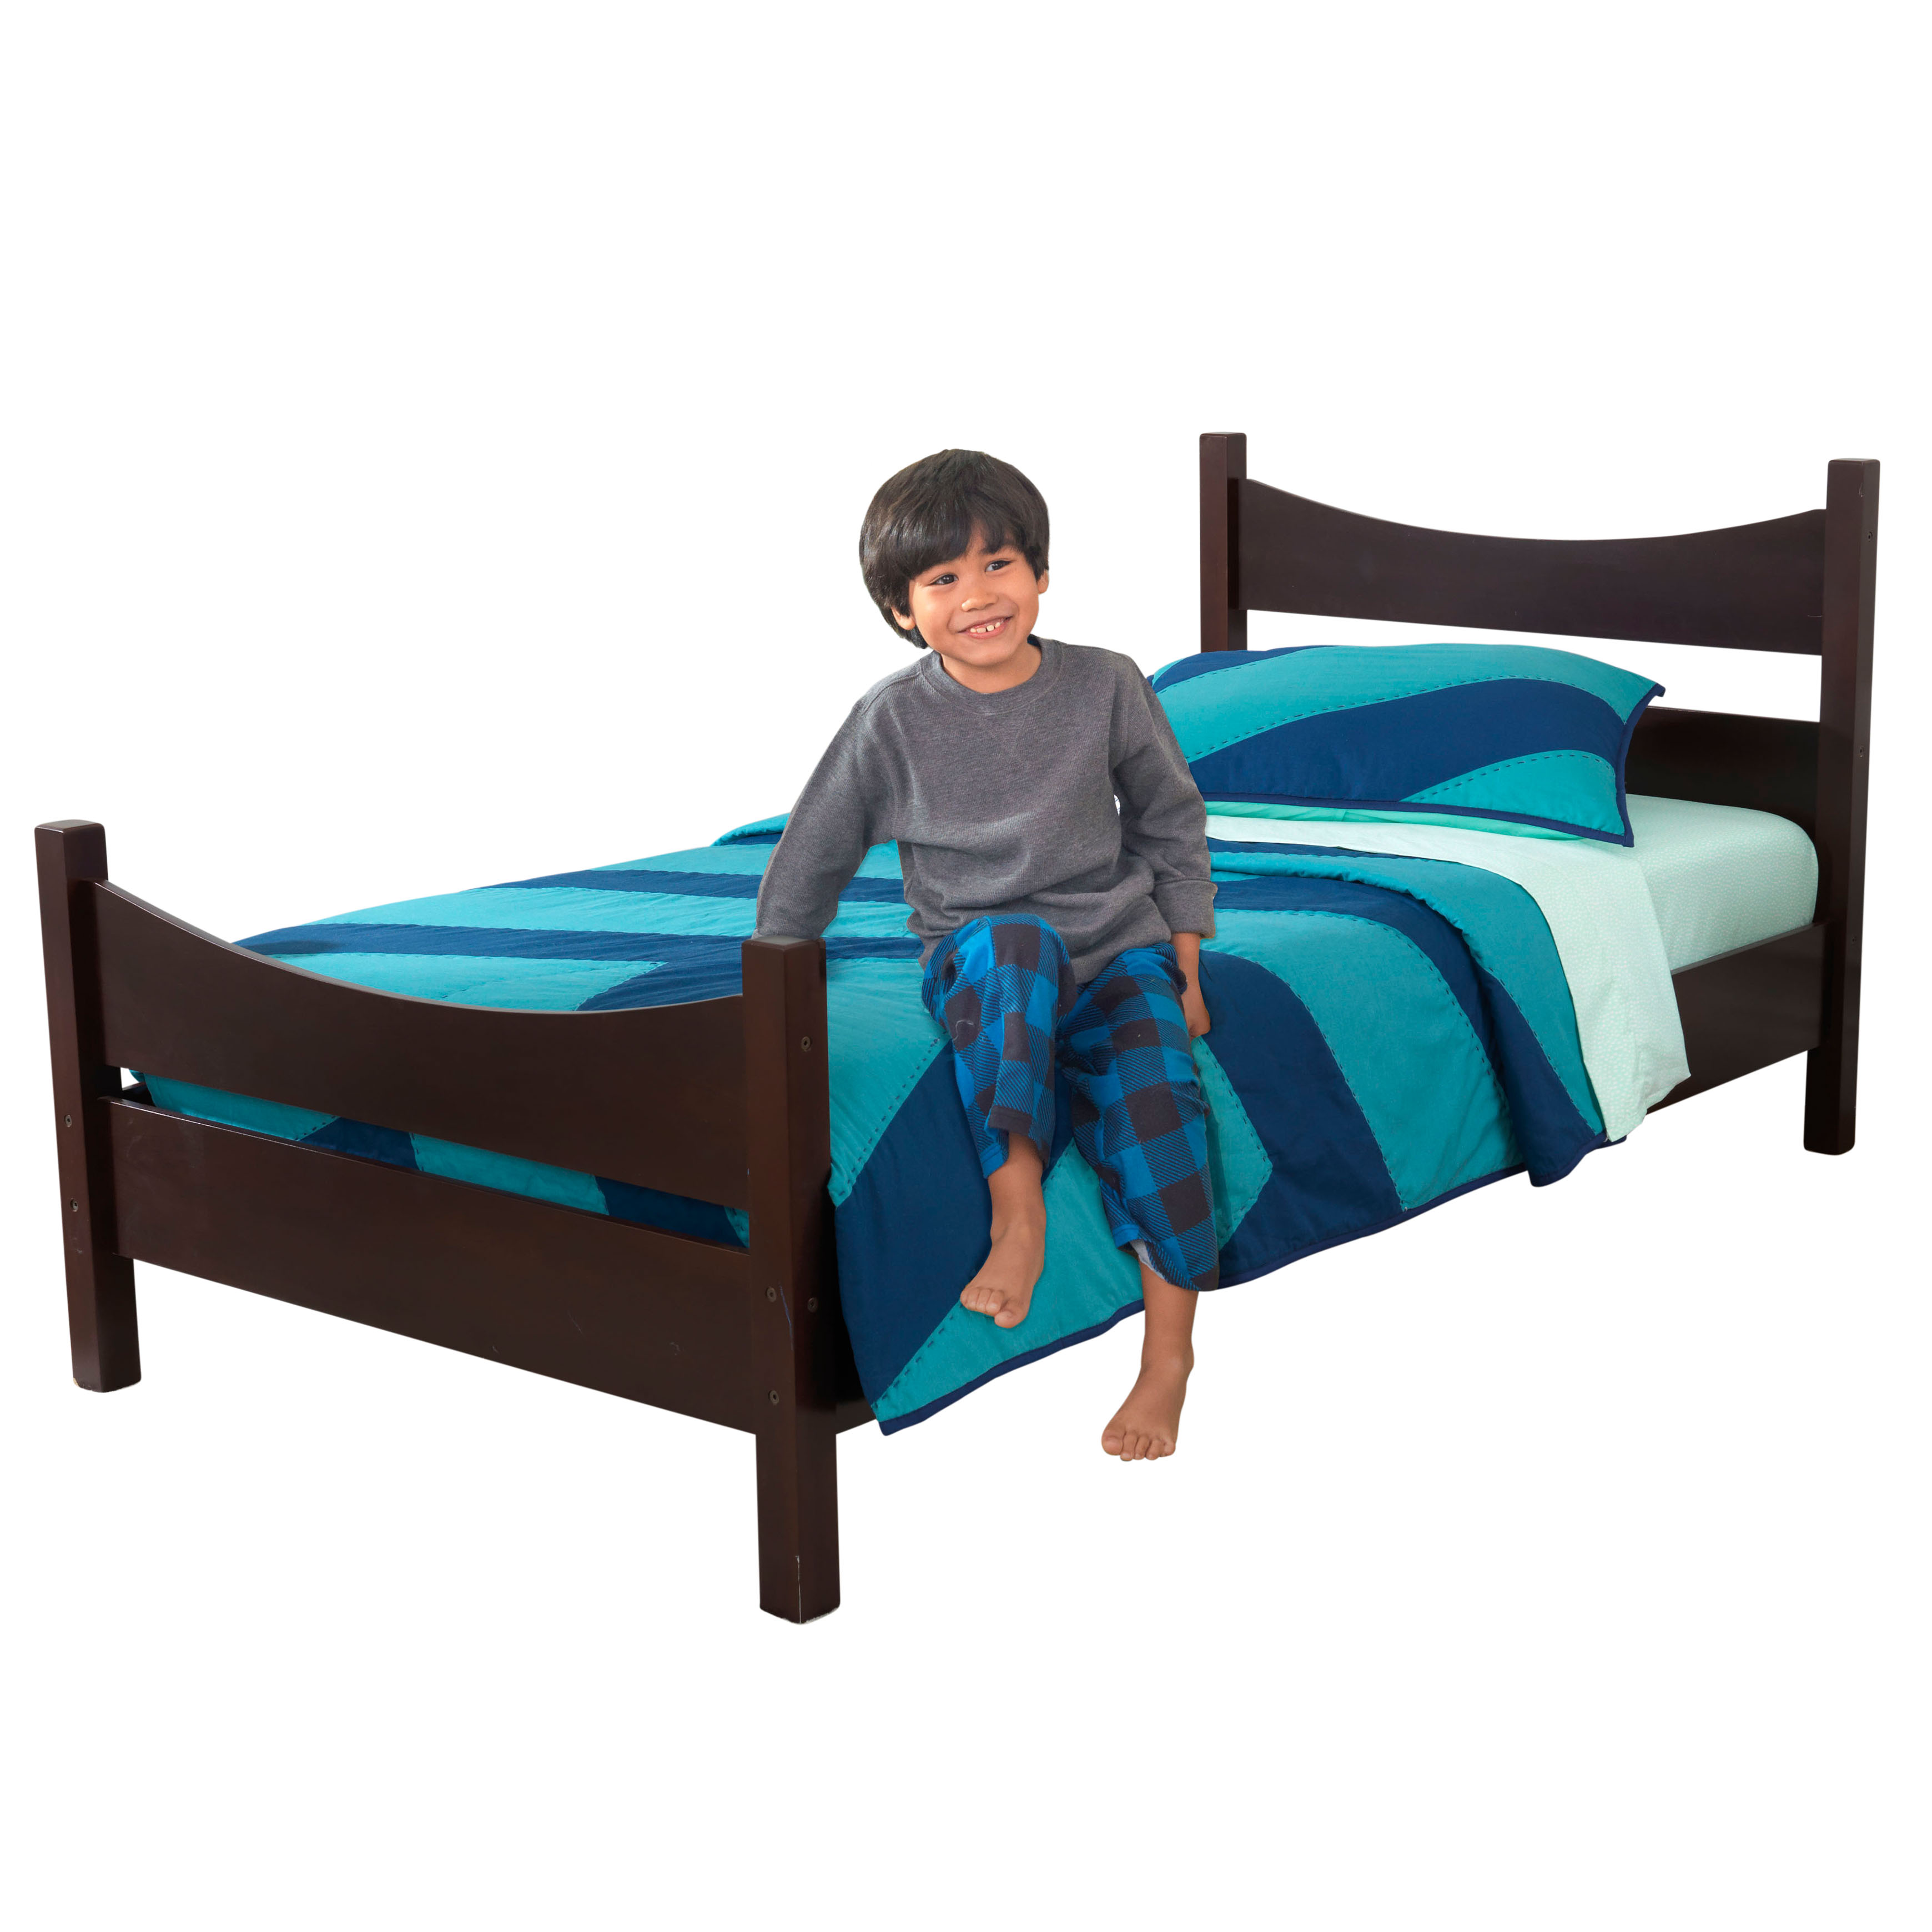 KidKraft Addison Wooden Kids' Bed, Twin, Multiple Colors